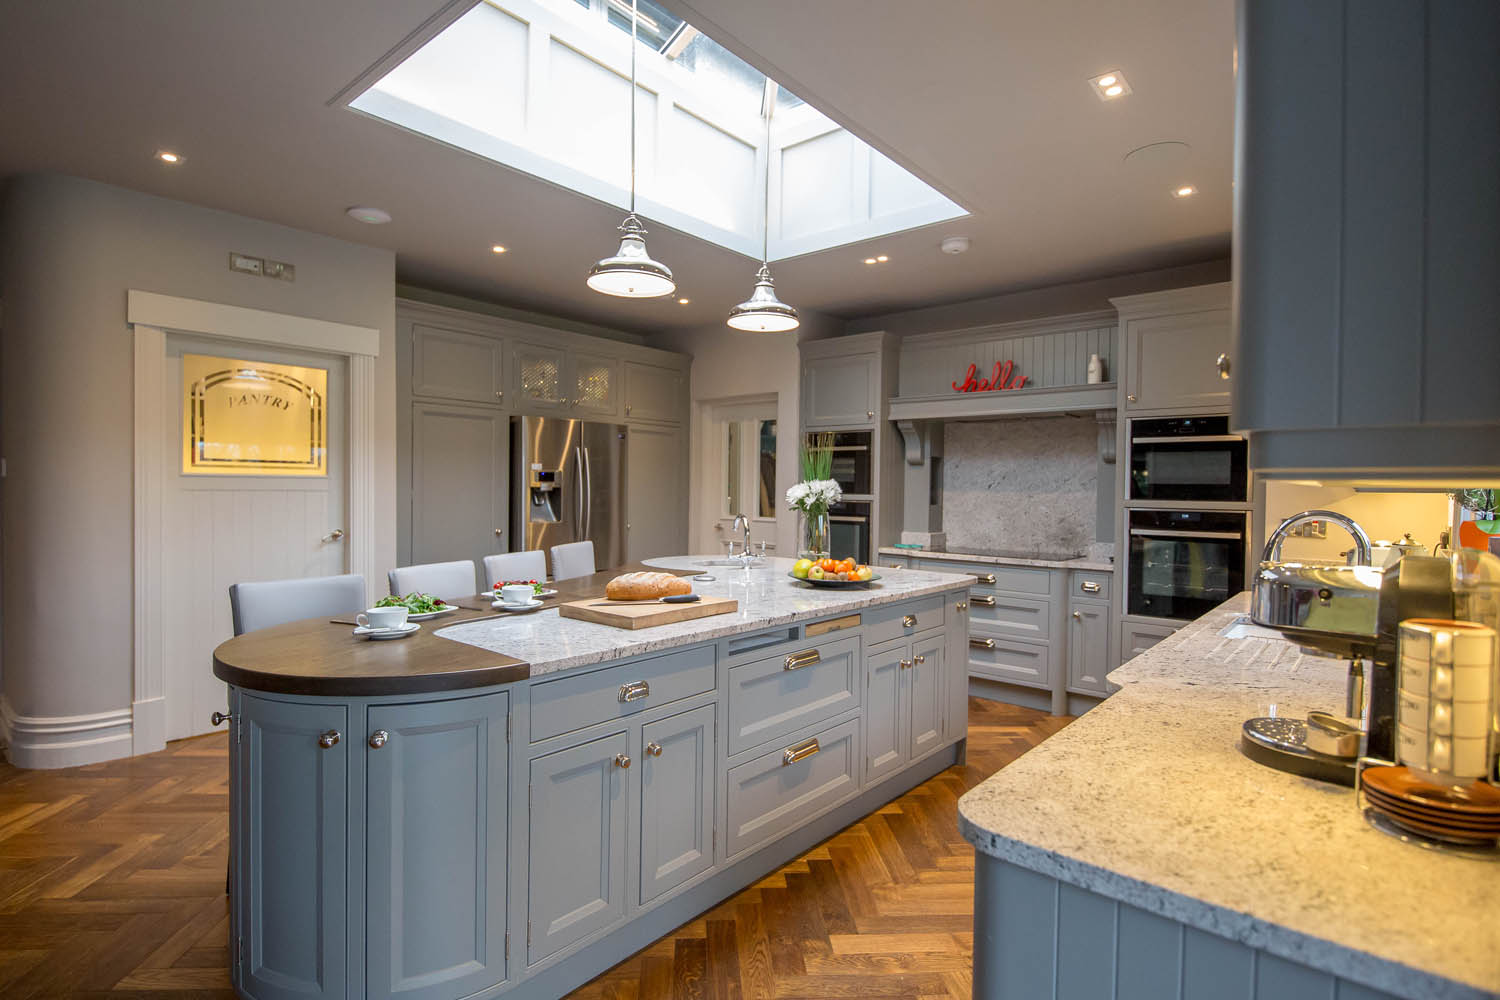 KITCHEN OF THE MONTH GALLERY